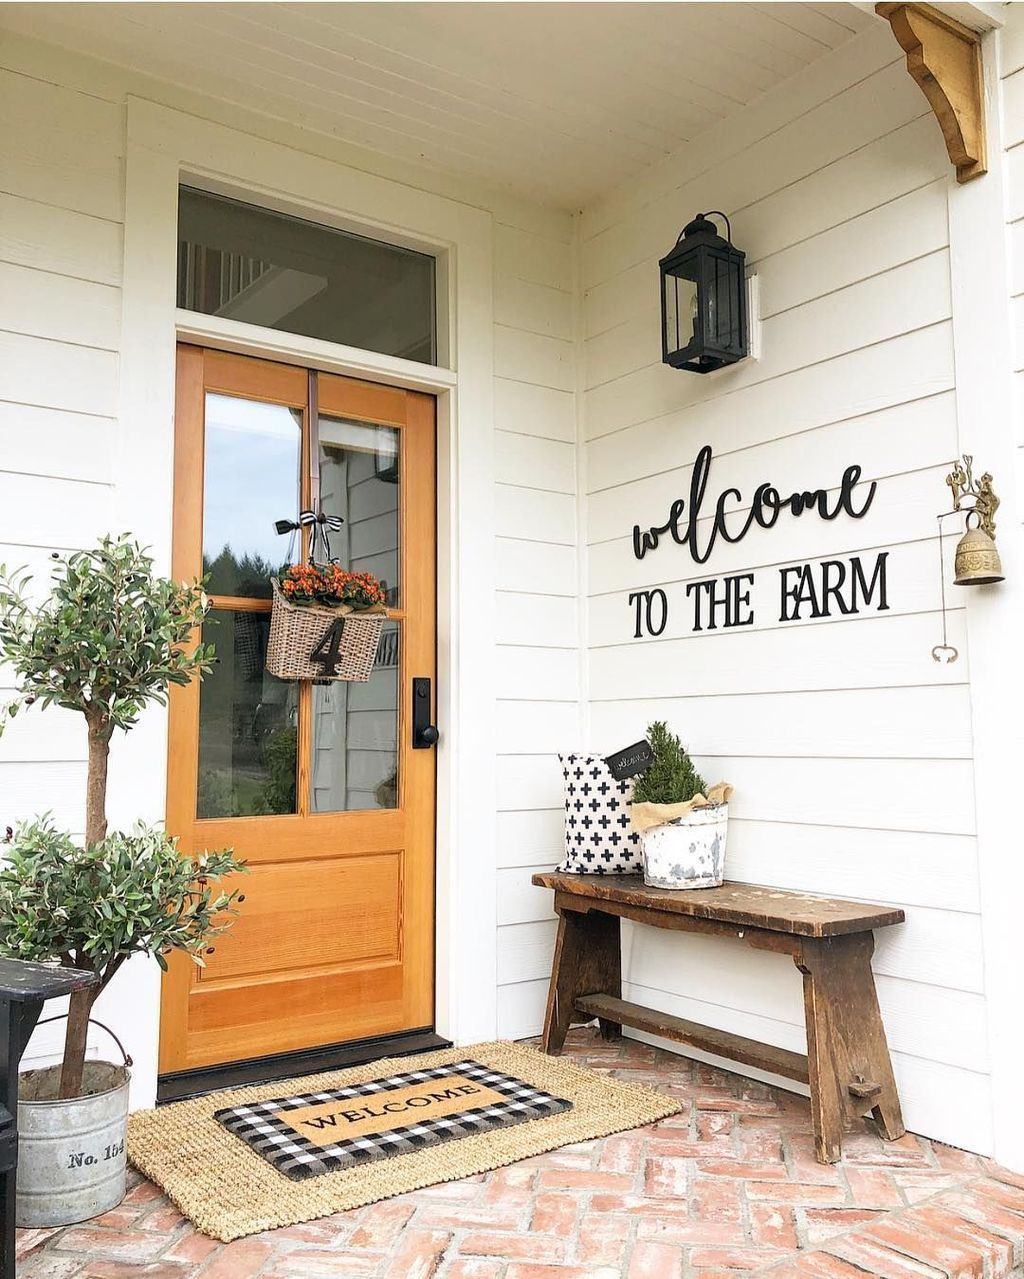 49 Diy Small Porch Decorating Ideas Smallporchdecorating Modern Design In 2020 Small Front Porches Decorating Ideas Small Porch Decorating Porch Decorating